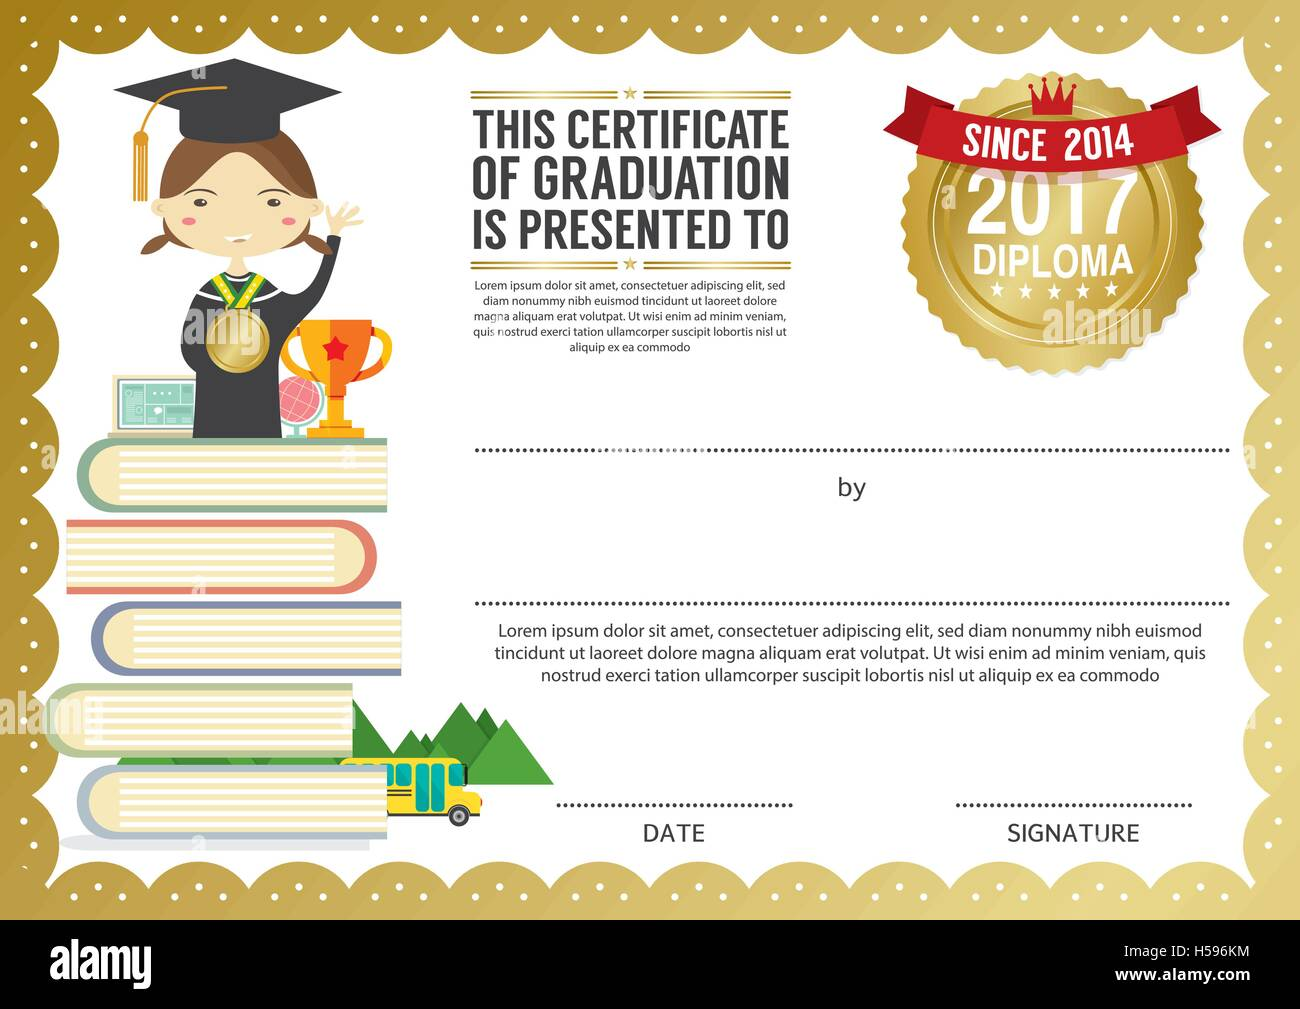 Preschool kids diploma certificate background monthly calendar preschool elementary school kids diploma certificate background preschool elementary school kids diploma certificate background design h596km xflitez Images